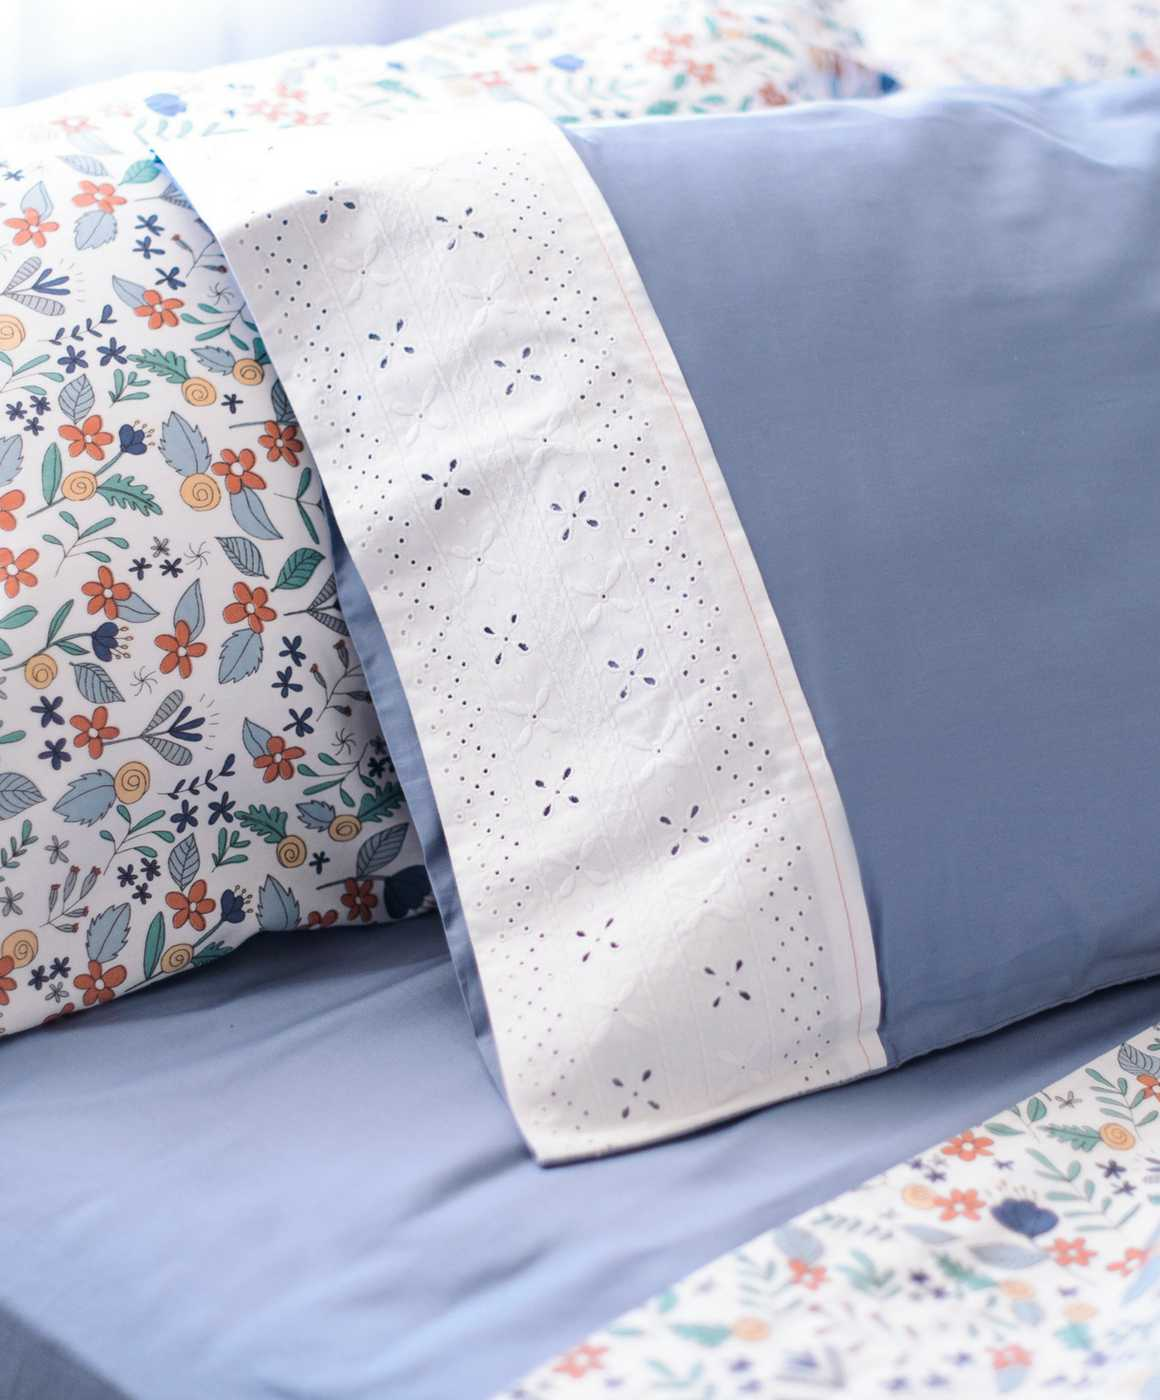 Embroidered Cotton Sheets Organic Bed Ohmabelcom Pillow With Embroider Sweet Dream Hetties Dreams